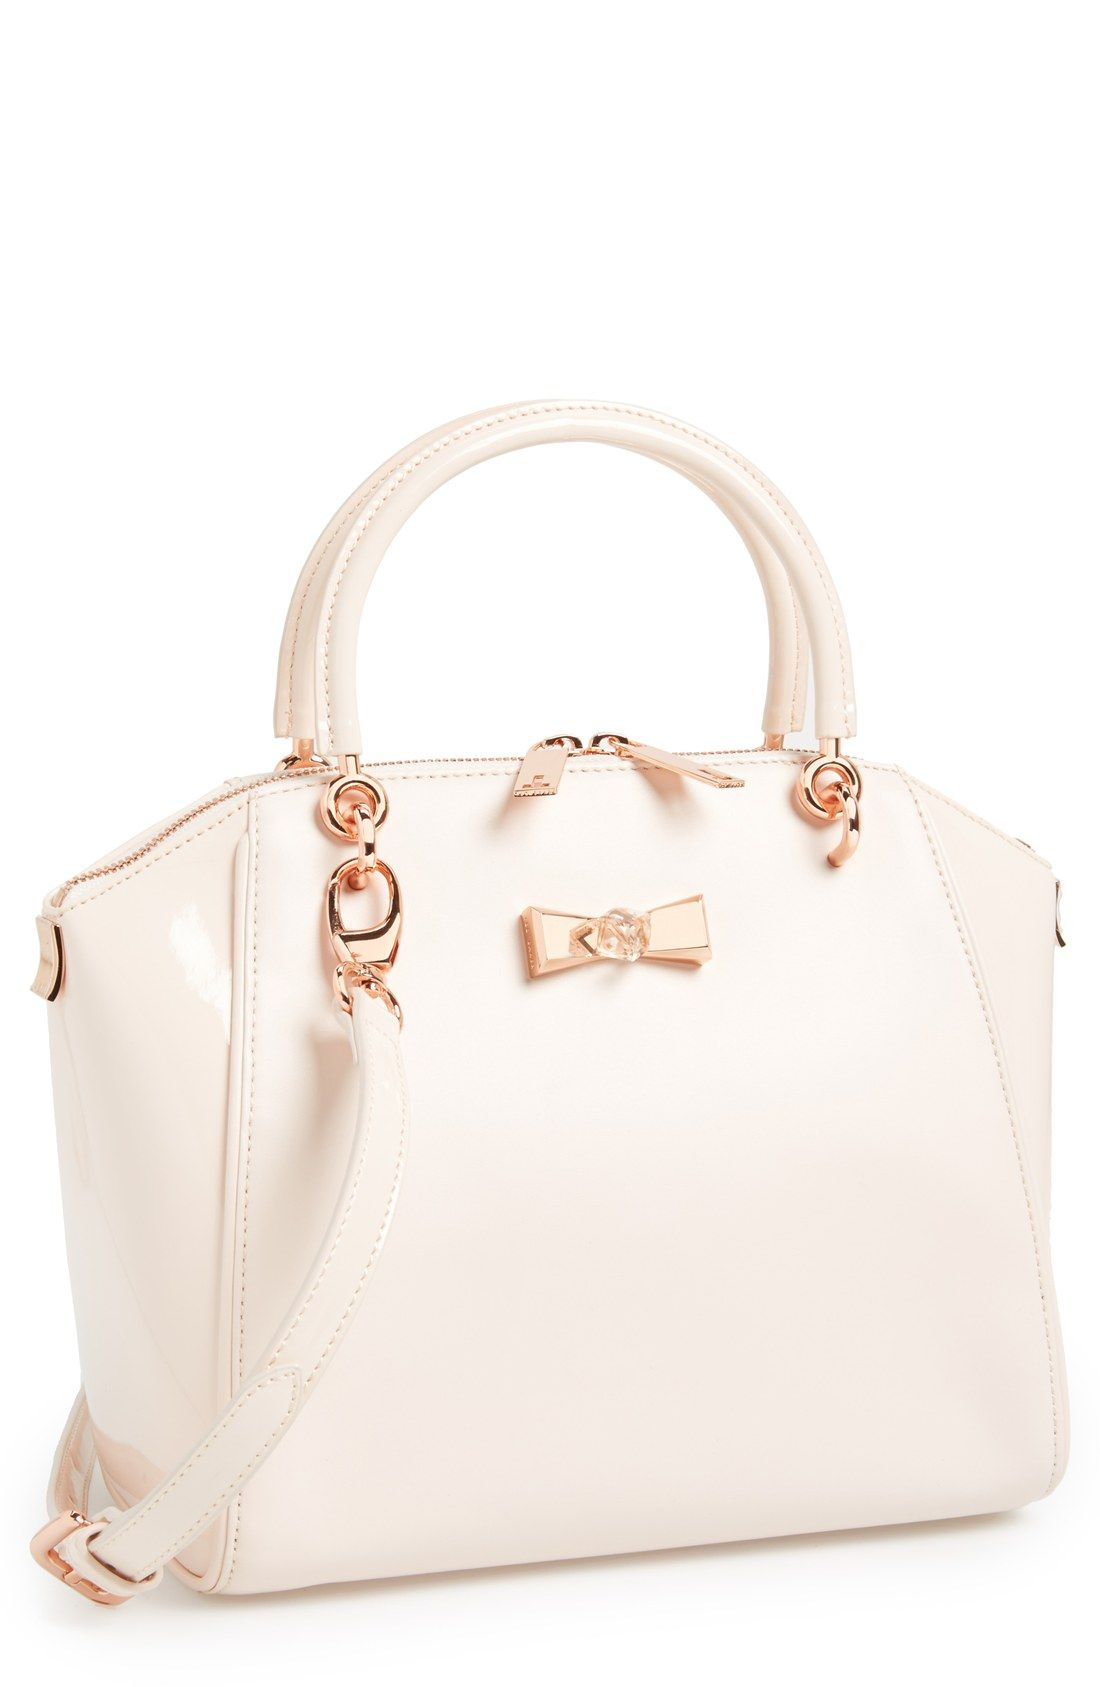 044d0ea0697b0 ... handbags will make you amazed. A gem-embellished bow tote in the most  gorgeous nude pink color.